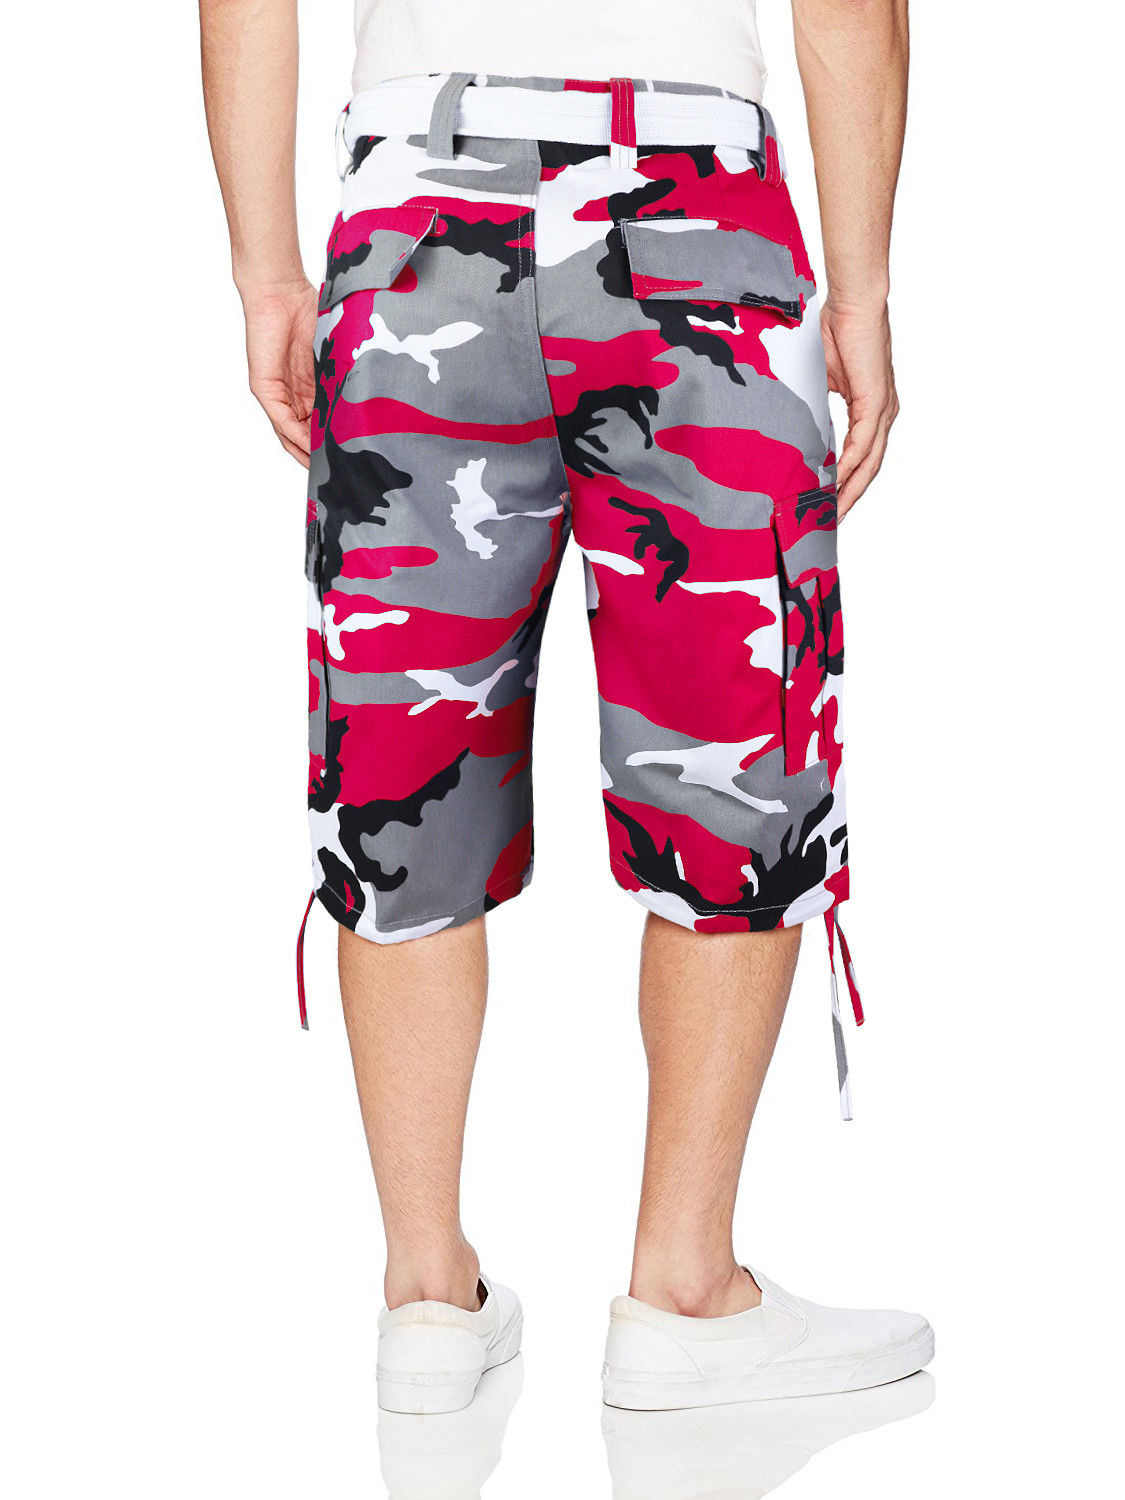 Men-039-s-Tactical-Military-Army-Camo-Camouflage-Slim-Fit-Cargo-Shorts-With-Belt thumbnail 21